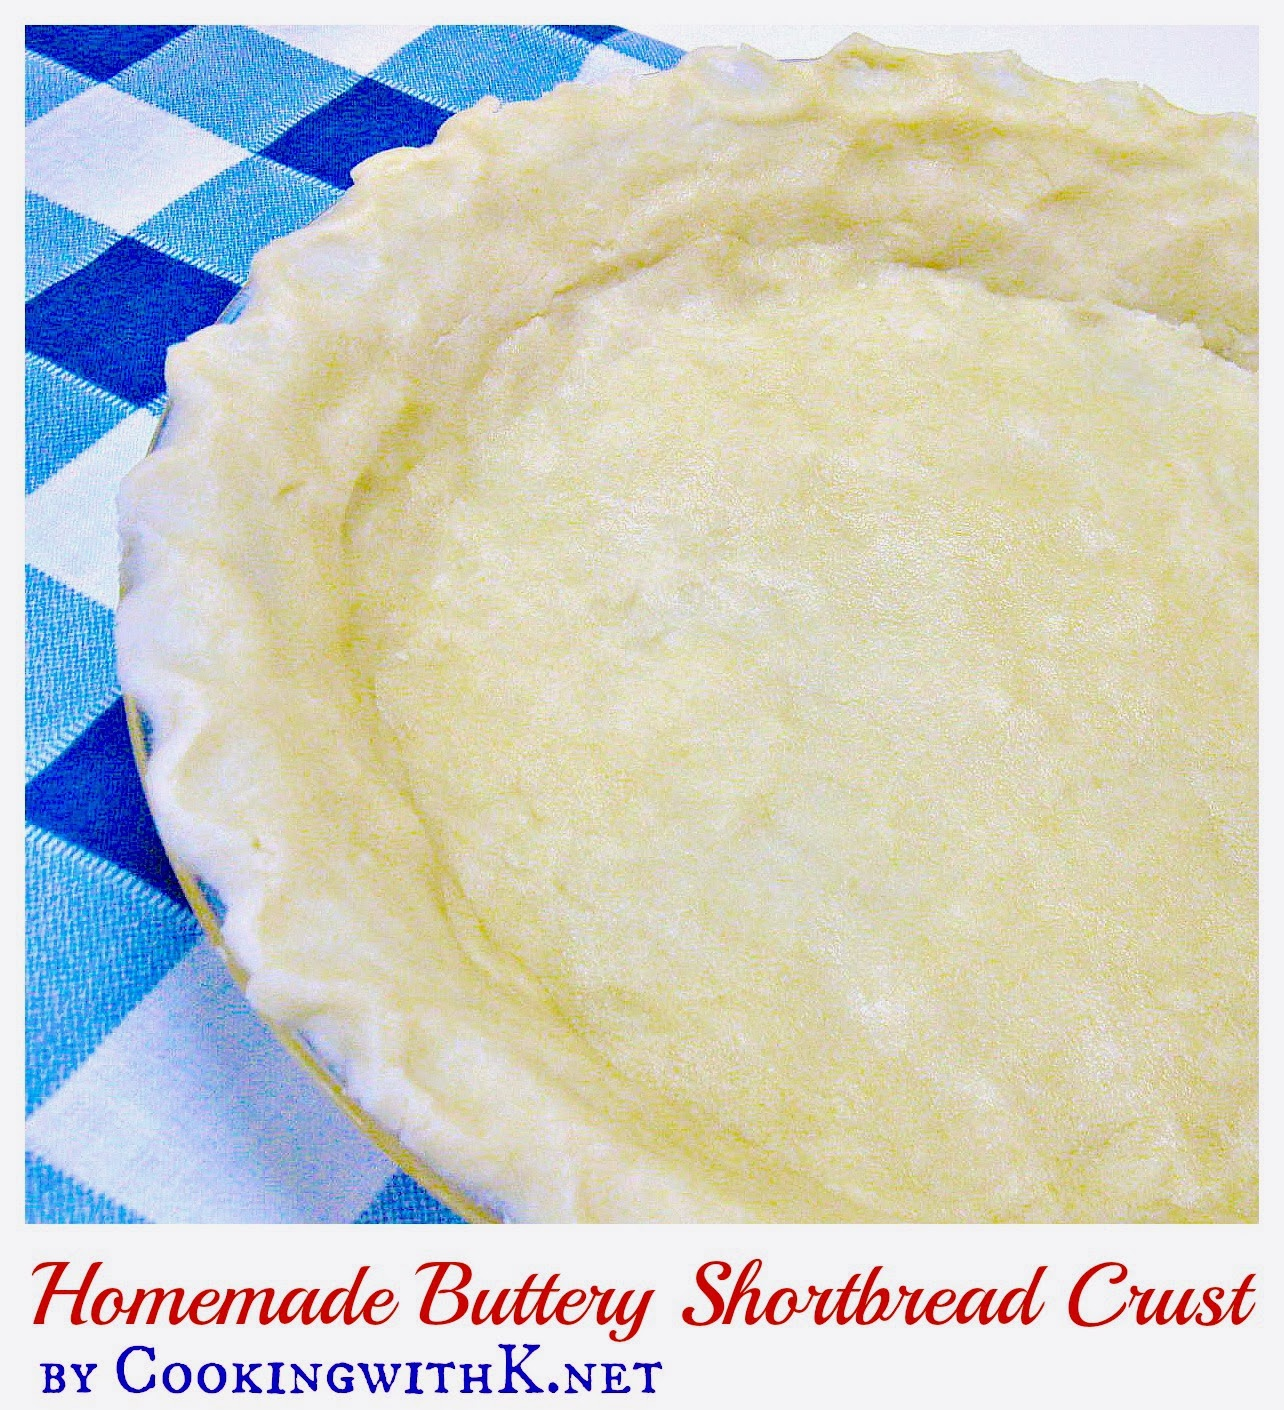 Shortbread cookies crust recipe